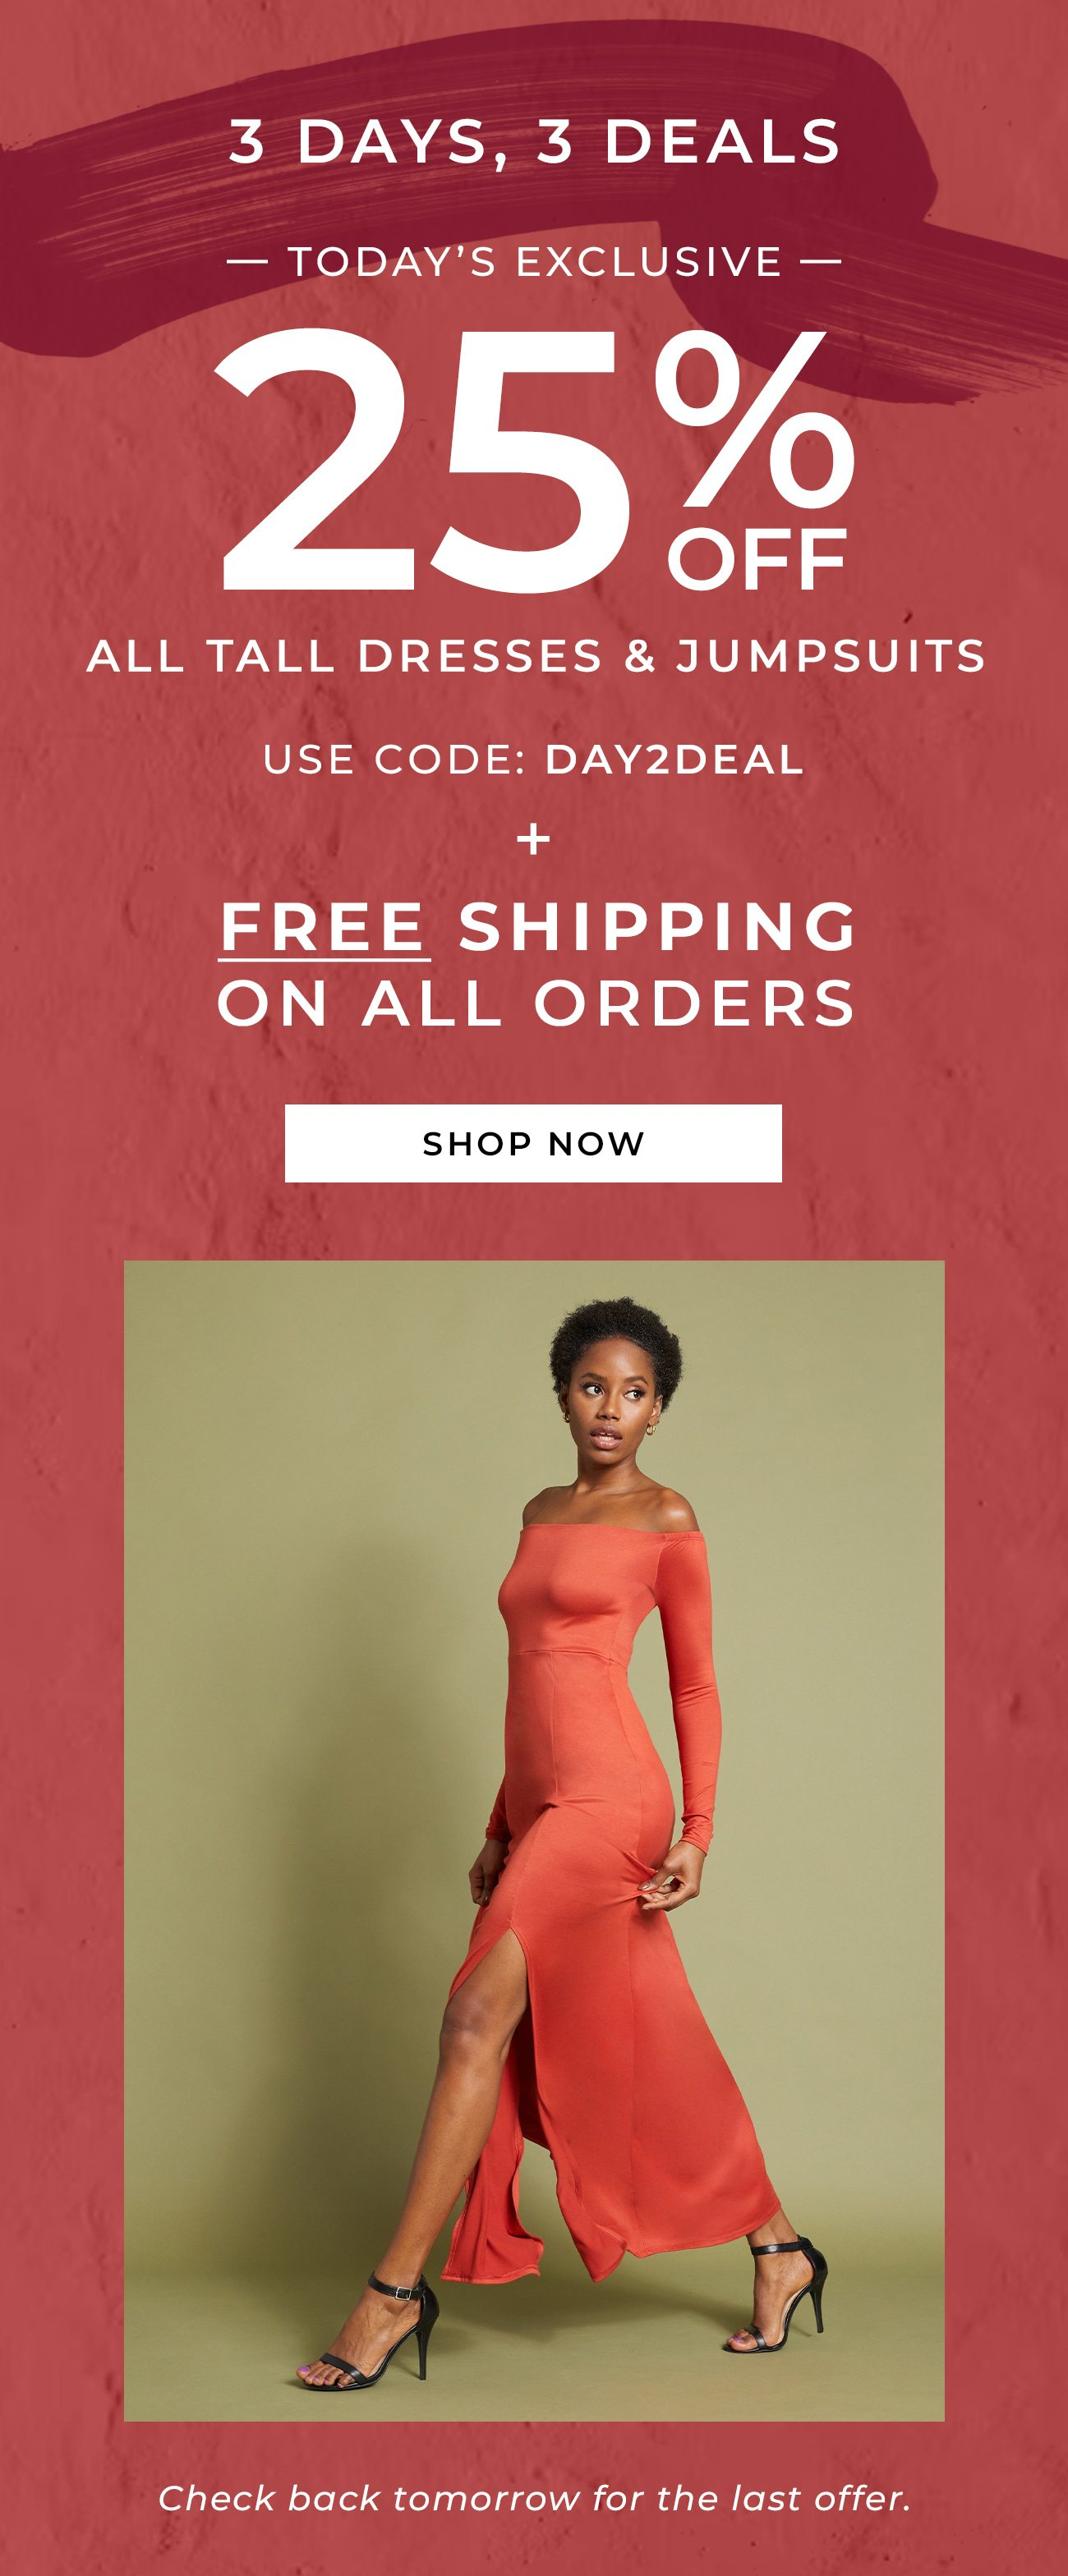 3 Days, 3 Deals - Today's Exclusive - 25% off all tall dresses & jumpsuits - Use Code: DAY2DEAL